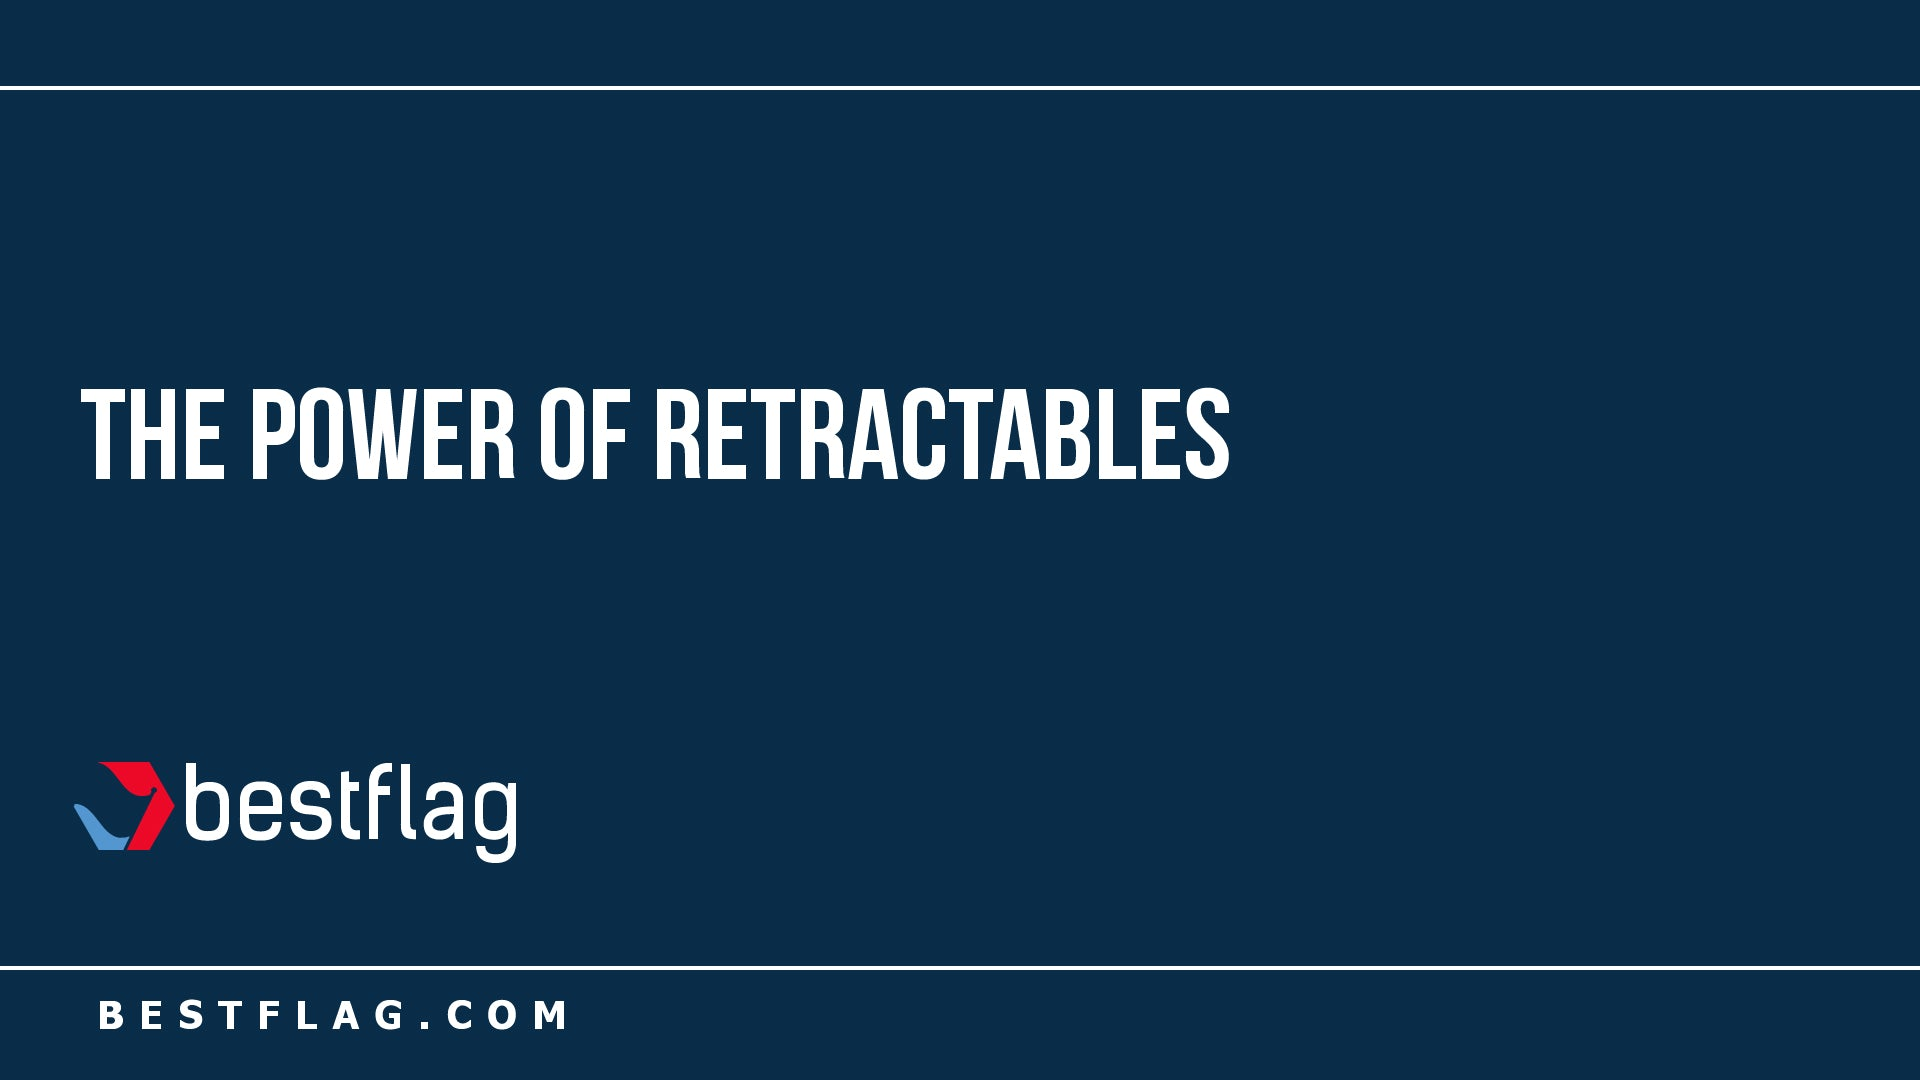 The Power of Retractables